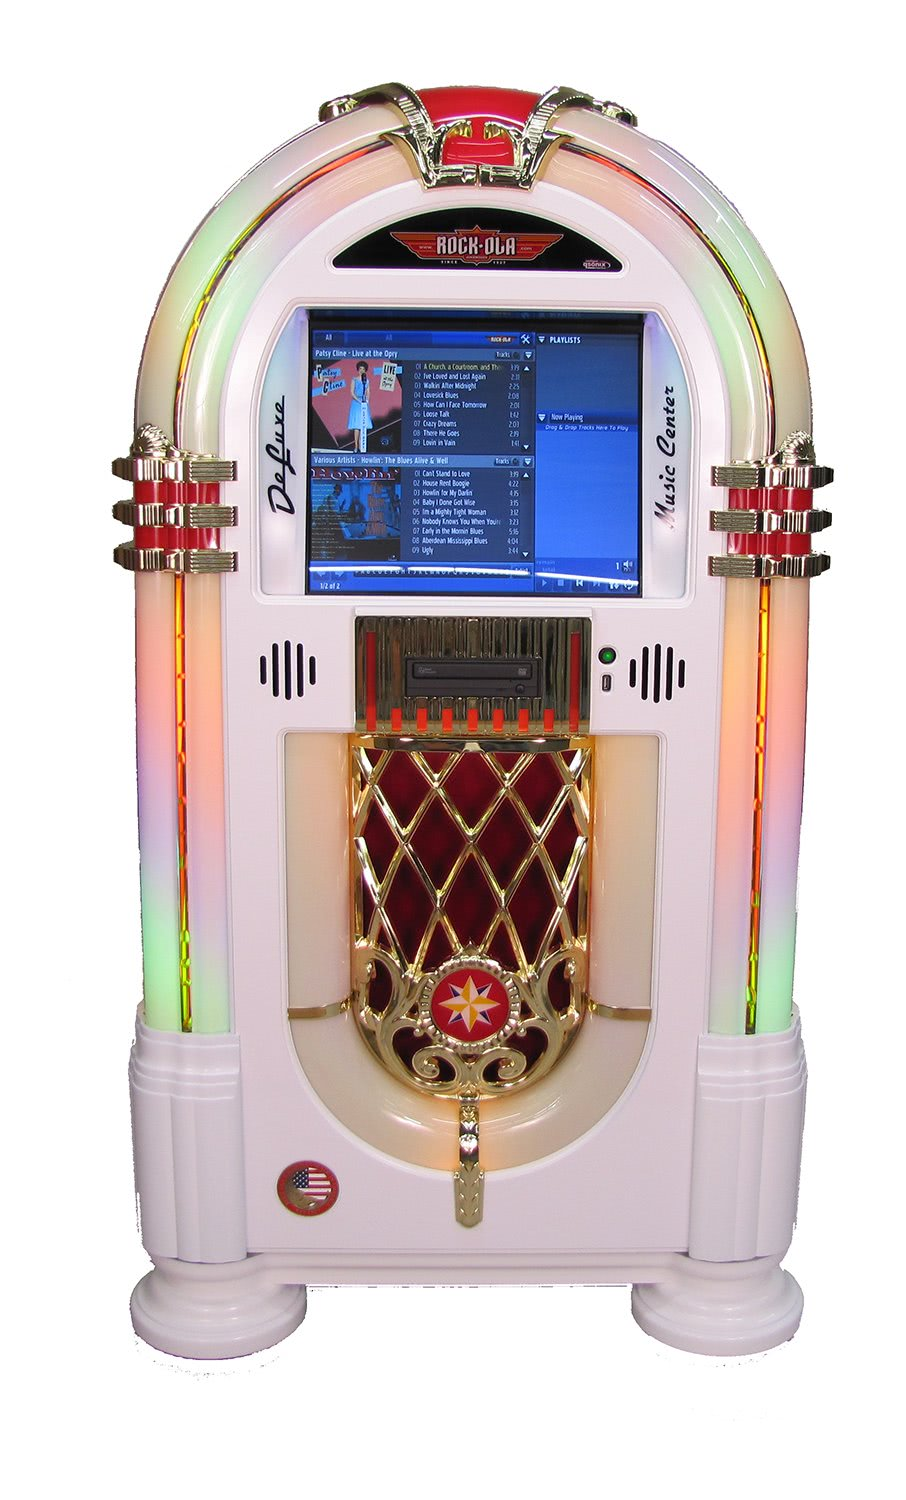 Rock Ola Gloss Music Centre Jukebox Liberty Games